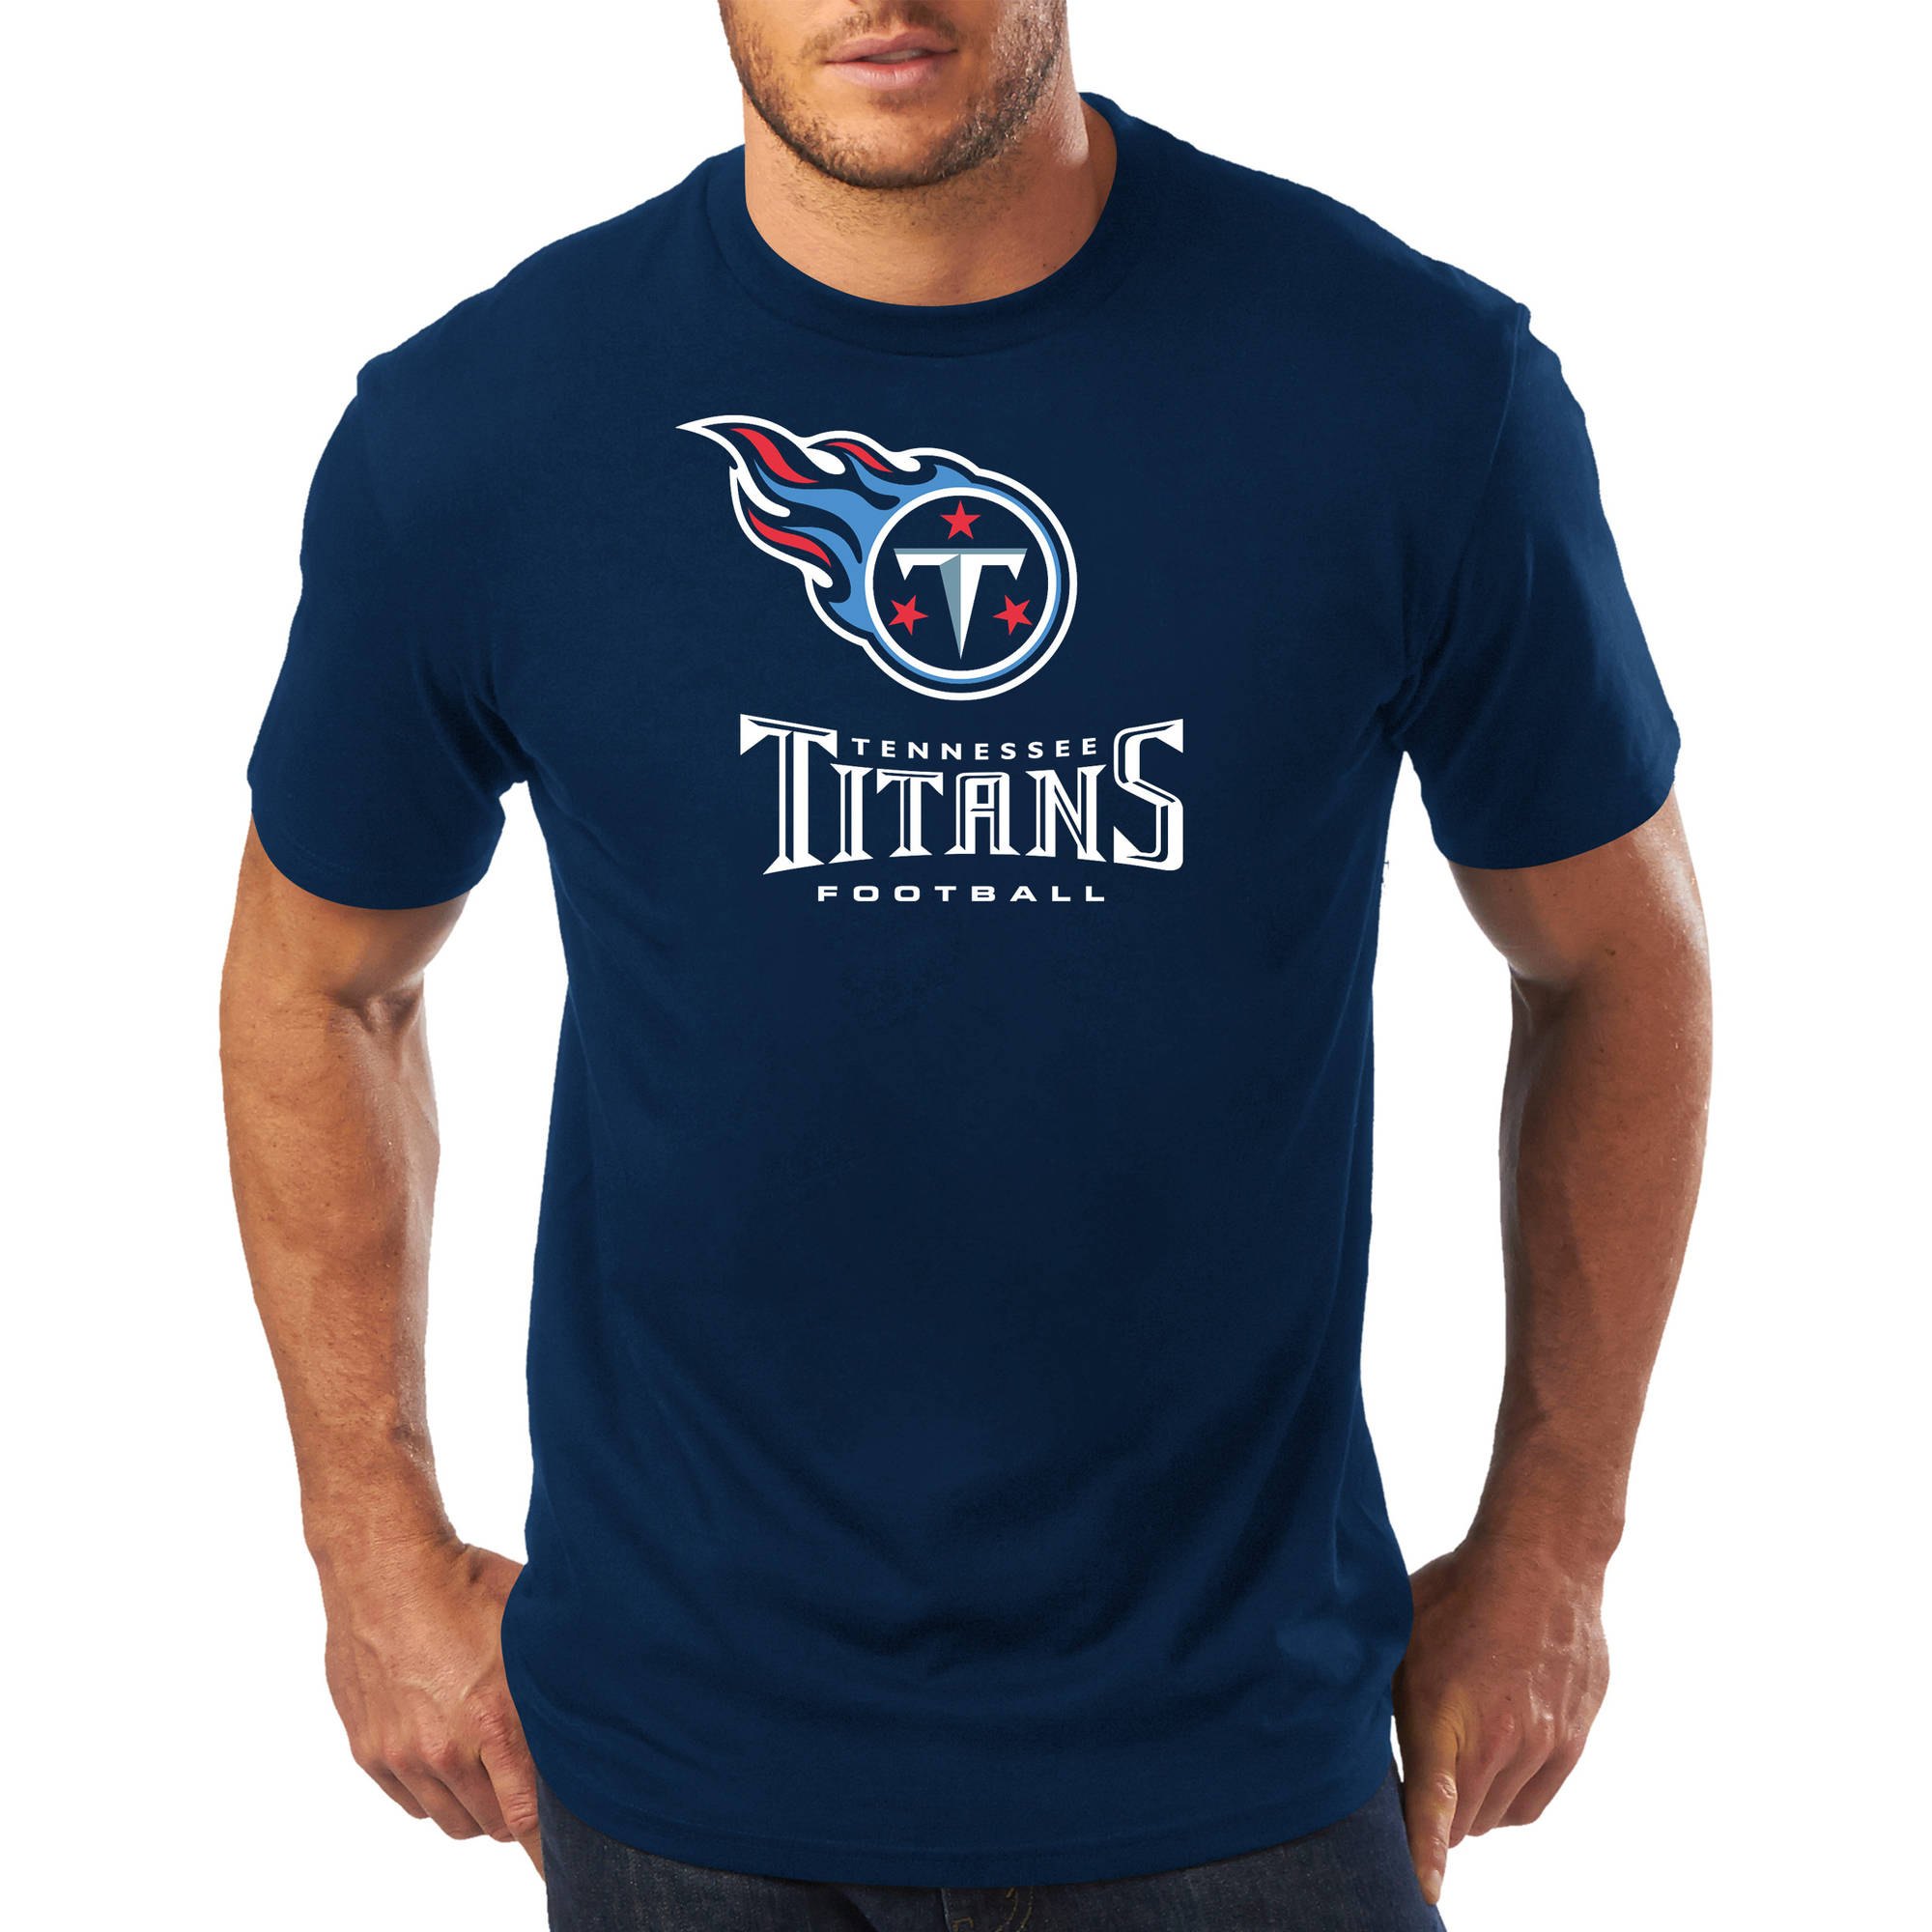 Men's NFL Tennessee Titans Short Sleeve Tee